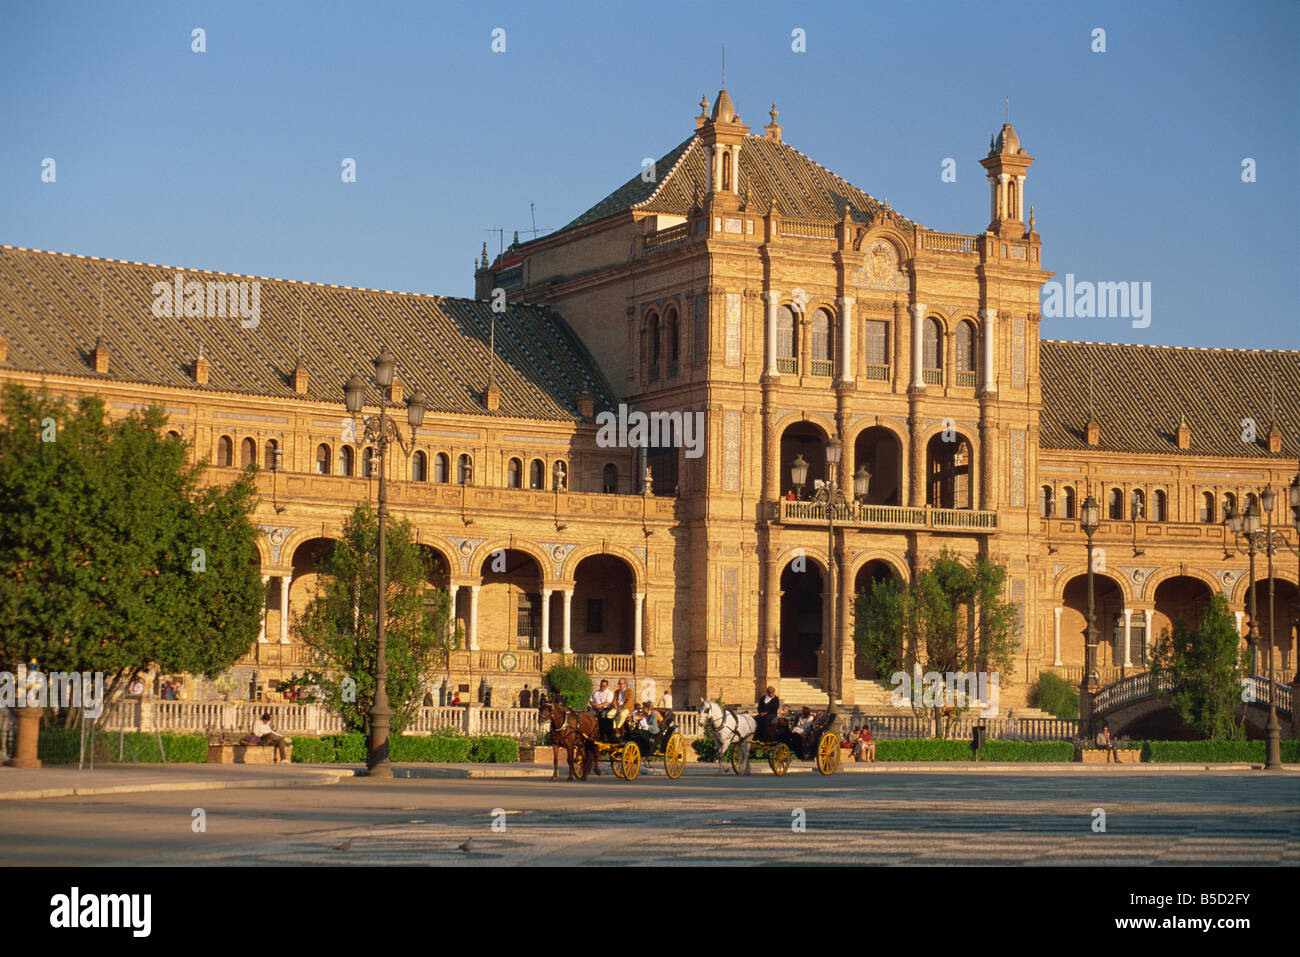 Horse-drawn carraiges and the Palacio Espanol at sunset, Plaza de Espana, Parque de Maria Luisa, Seville, Andalucia, - Stock Image